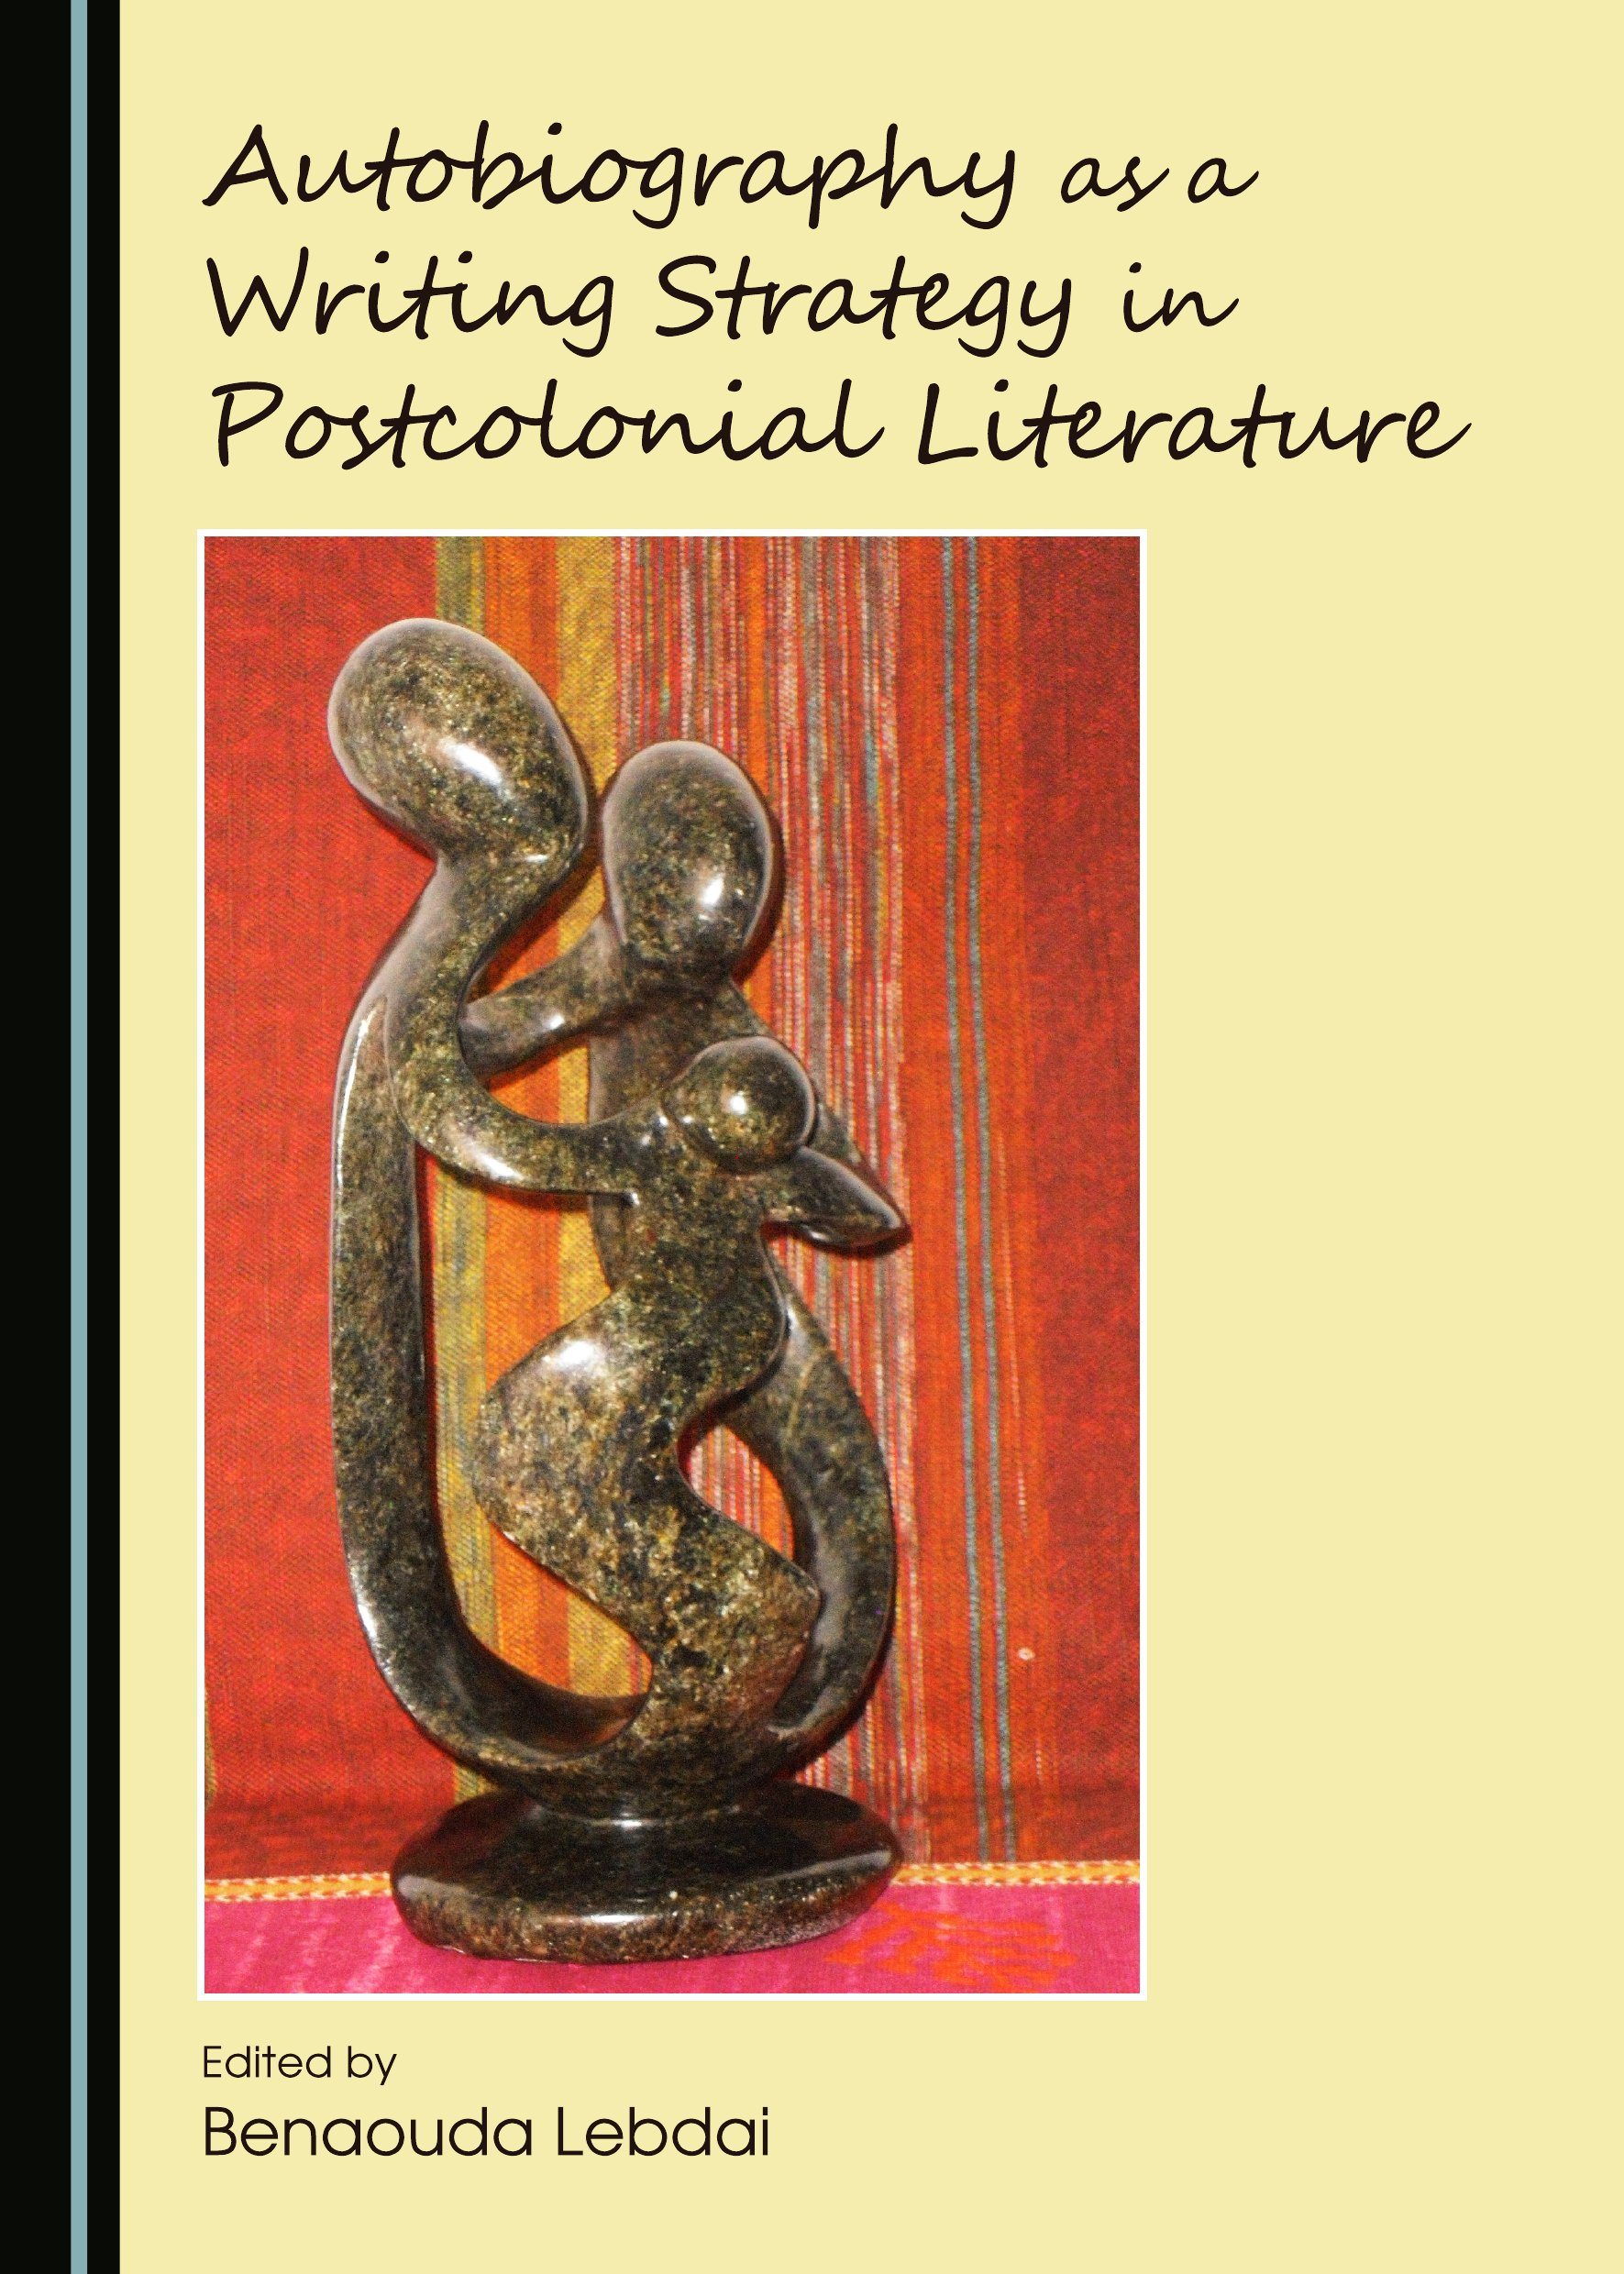 Autobiography as a Writing Strategy in Postcolonial Literature